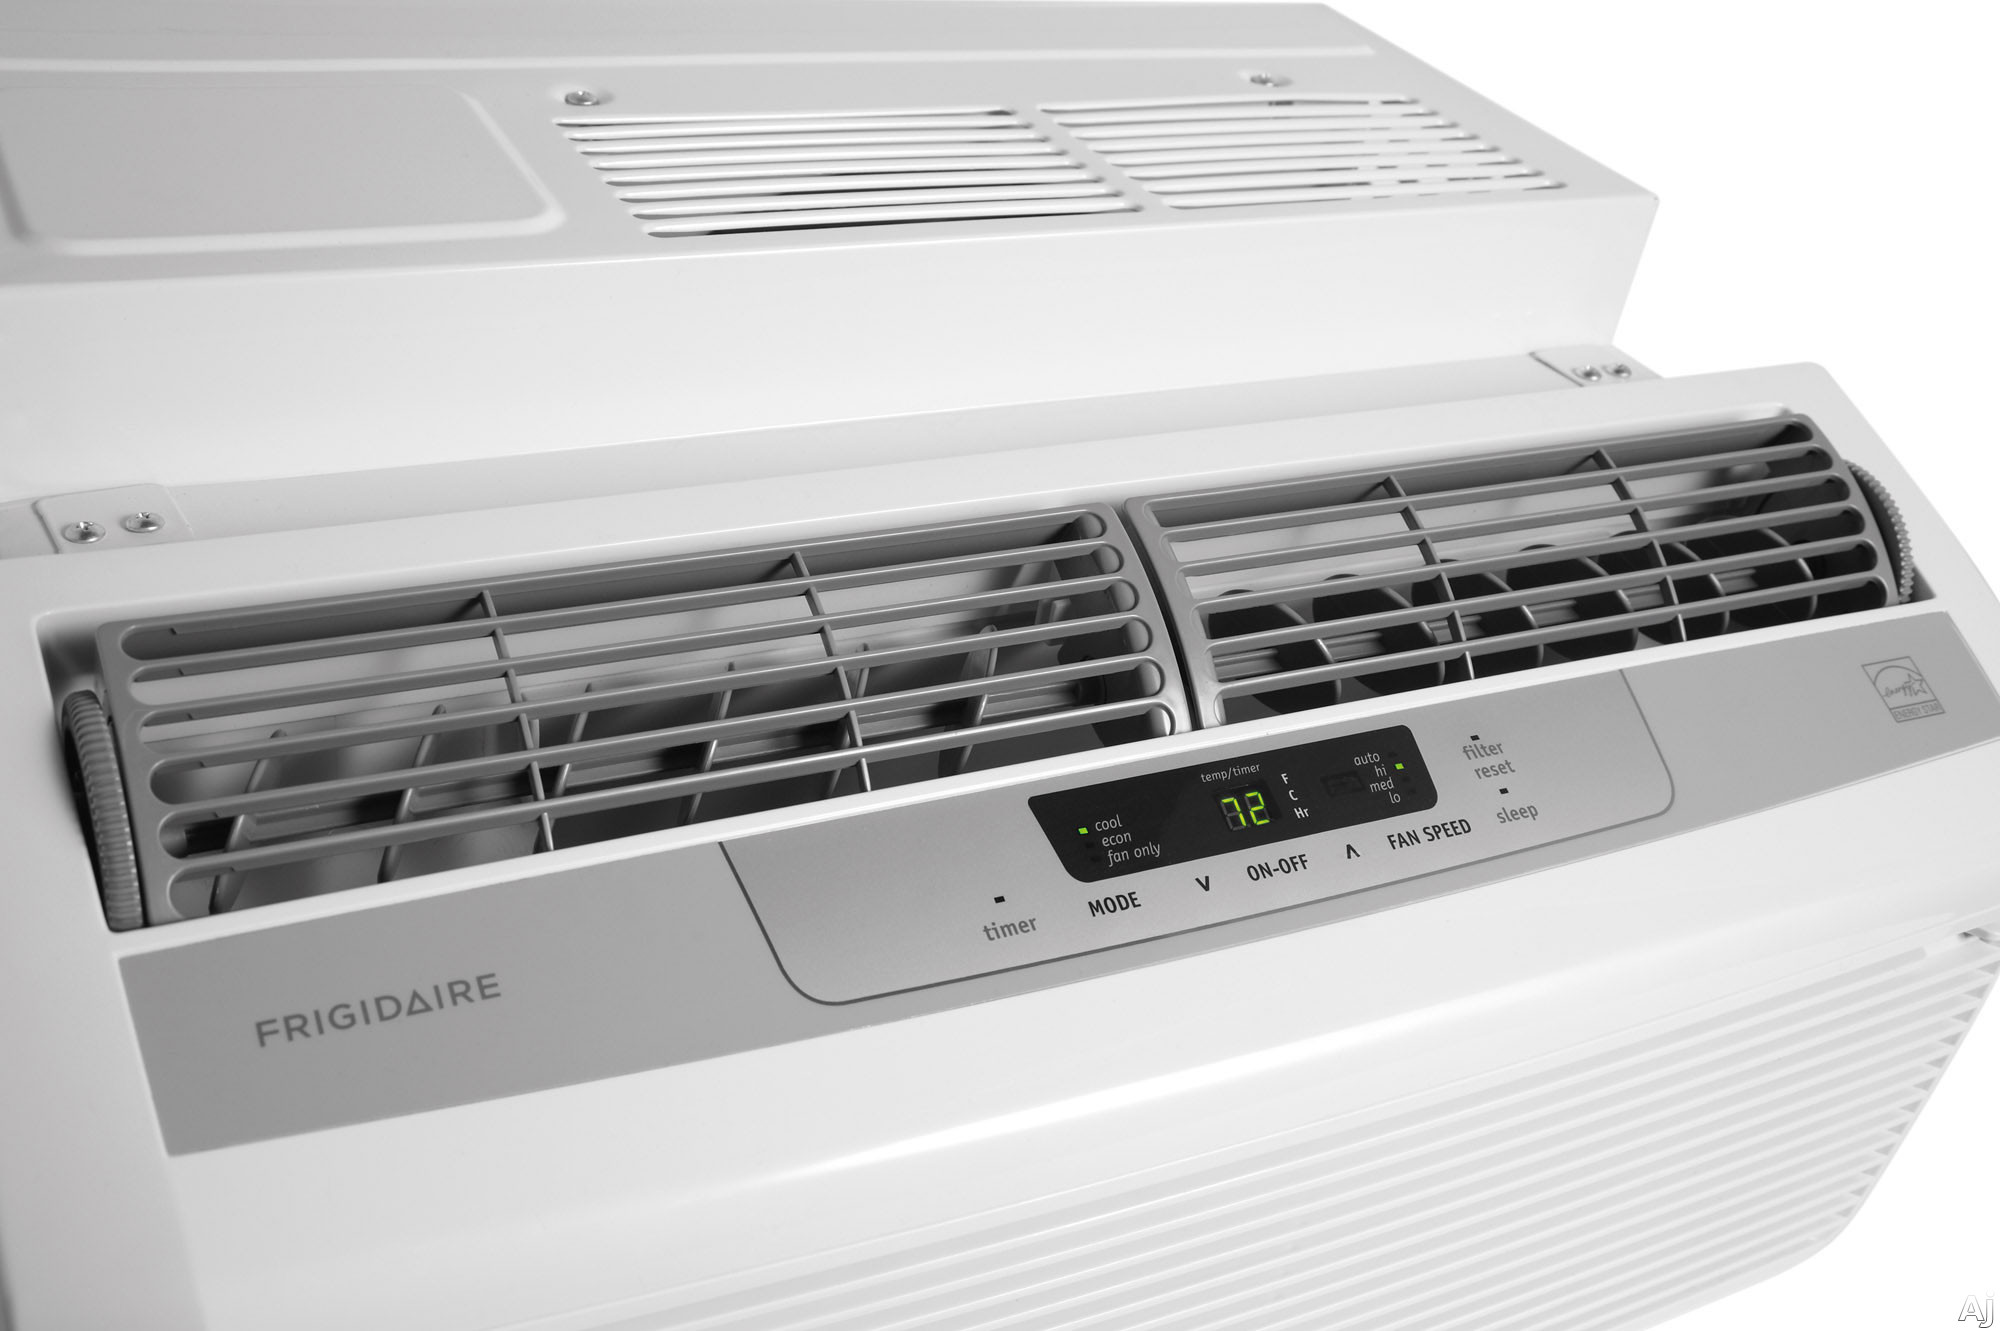 Home > Air Conditioners > Room Air Conditioners > FFRL0633Q1 #5E7B28